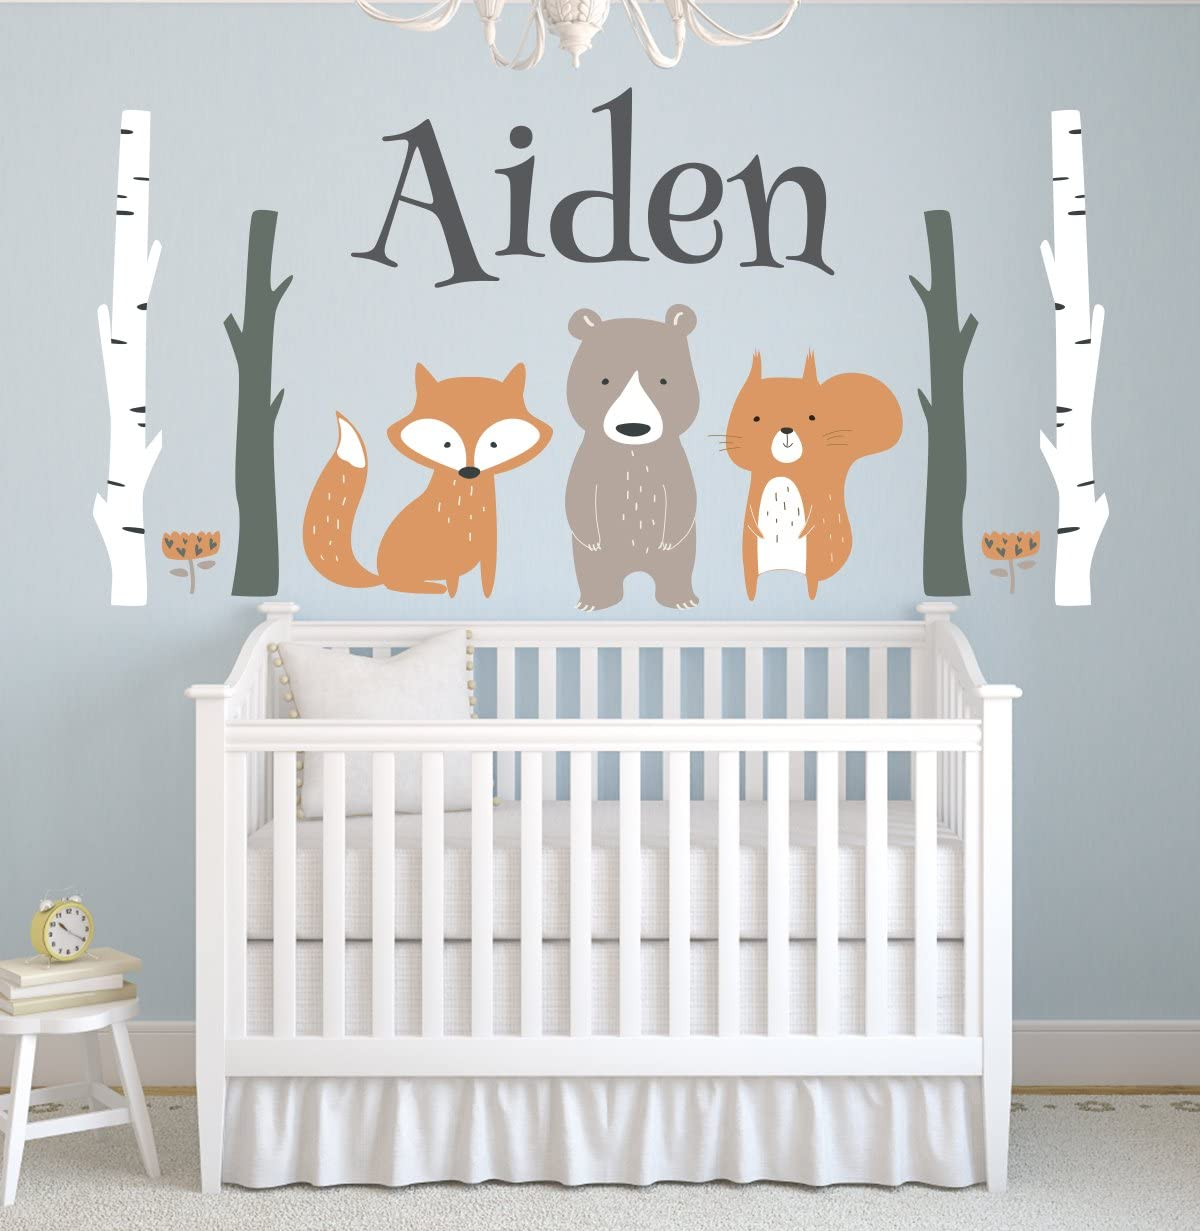 Woodland Wall Decal Nursery Forest Wall Decal Nursery Removable Wall Decal with Name Nursery Decor Personalized Kids Name Wall Decal